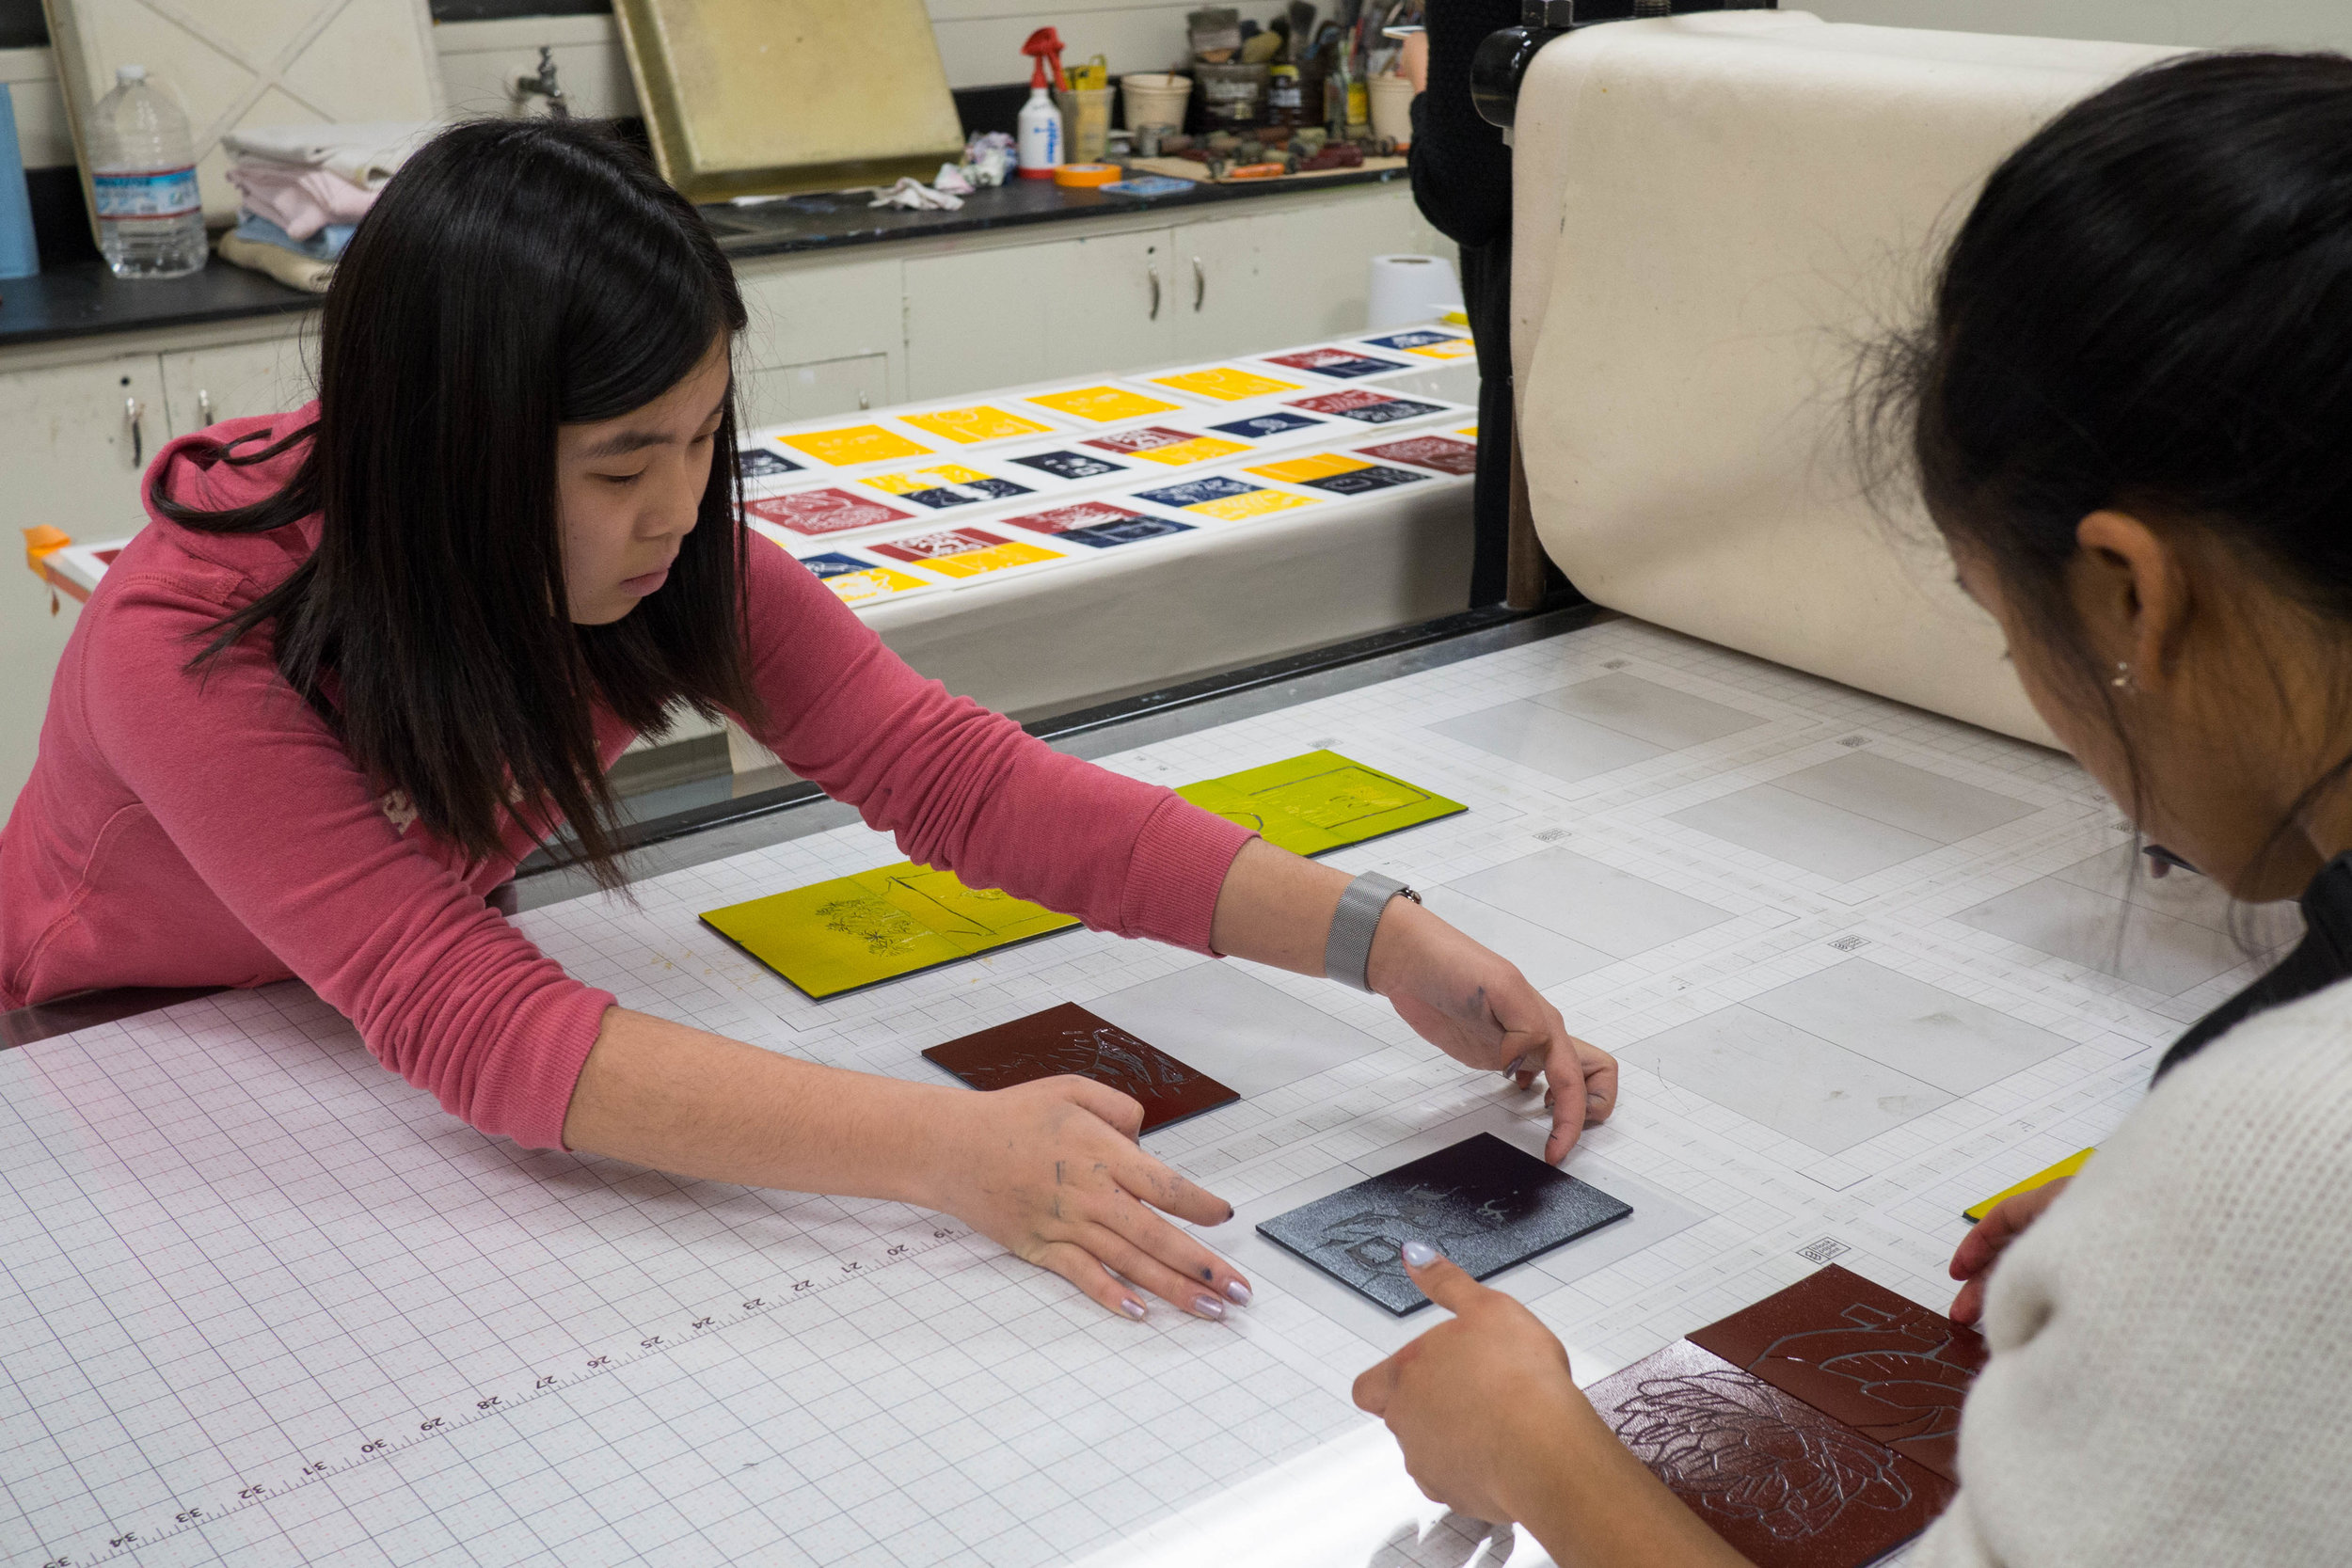 Participants ink blocks and place them on the etching press for printing